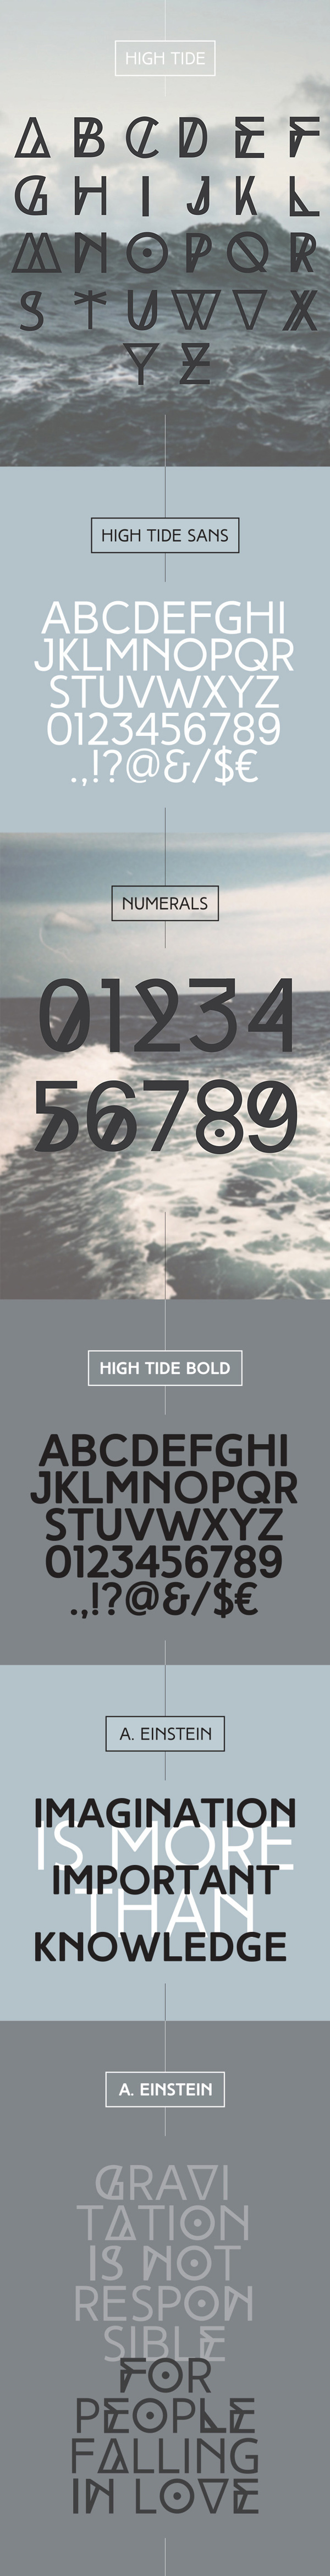 High Tide font of the month